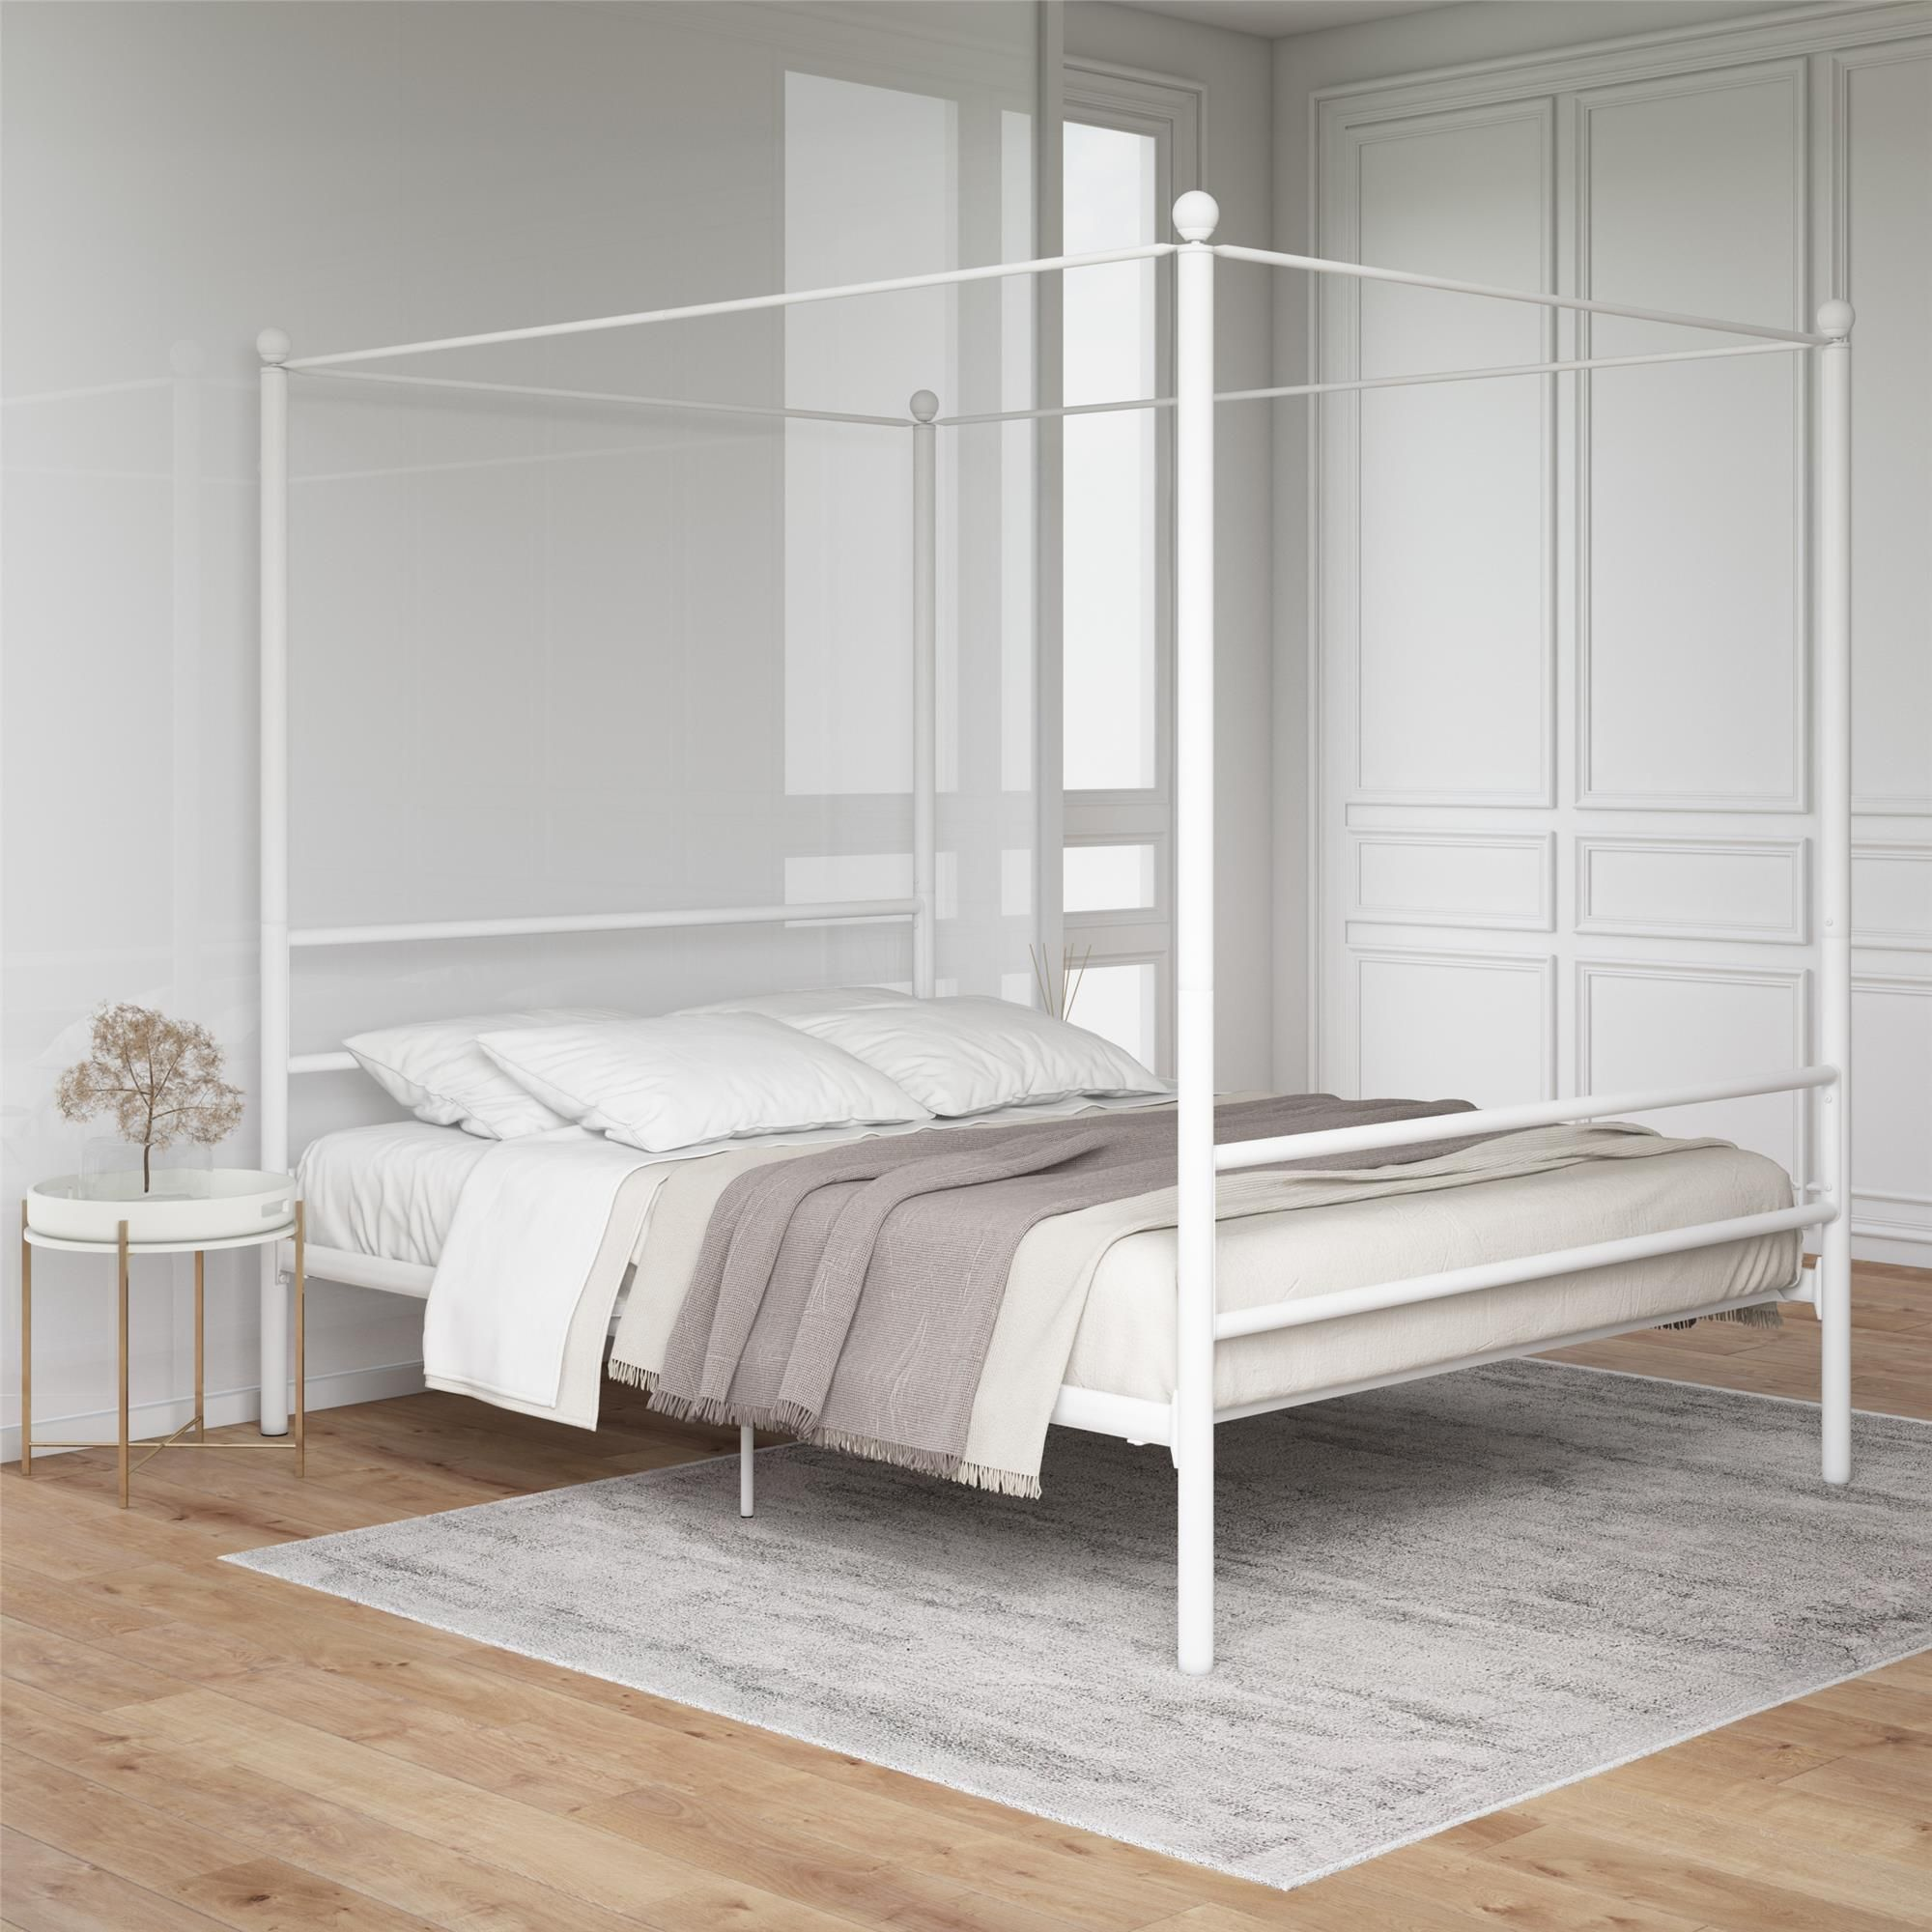 Mainstays Metal Canopy Bed White Queen Walmart Com In 2020 Metal Canopy Bed Canopy Bed Frame White Queen Bed Frame